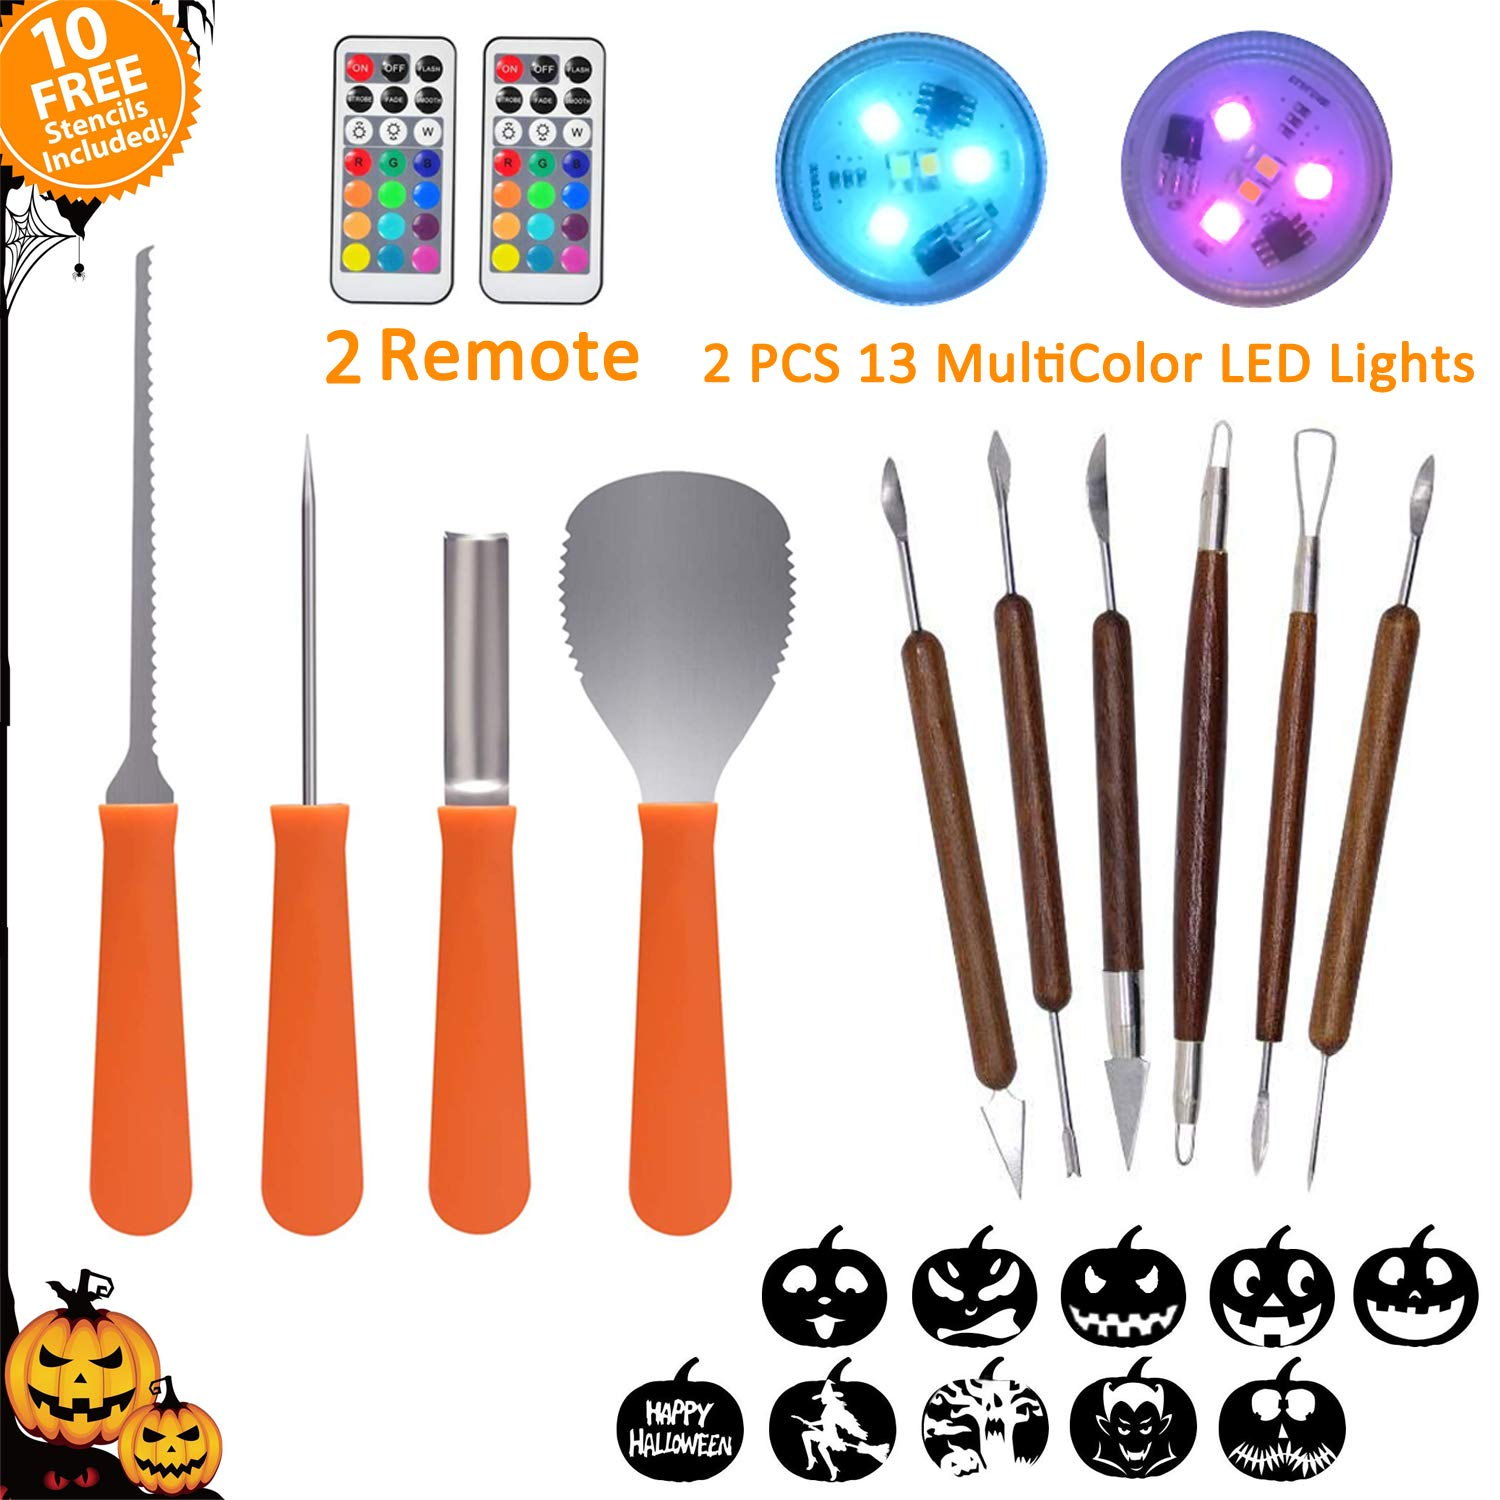 Palmhil Pumpkin Carving Kit for Halloween, 10 Pieces Professional Halloween Pumpkin Carving Set Knife Tools, 2 LED Pumpkin LED Lights with Remote & 10 Carving Stencils Perfect for Halloween Decoration by Palmhill